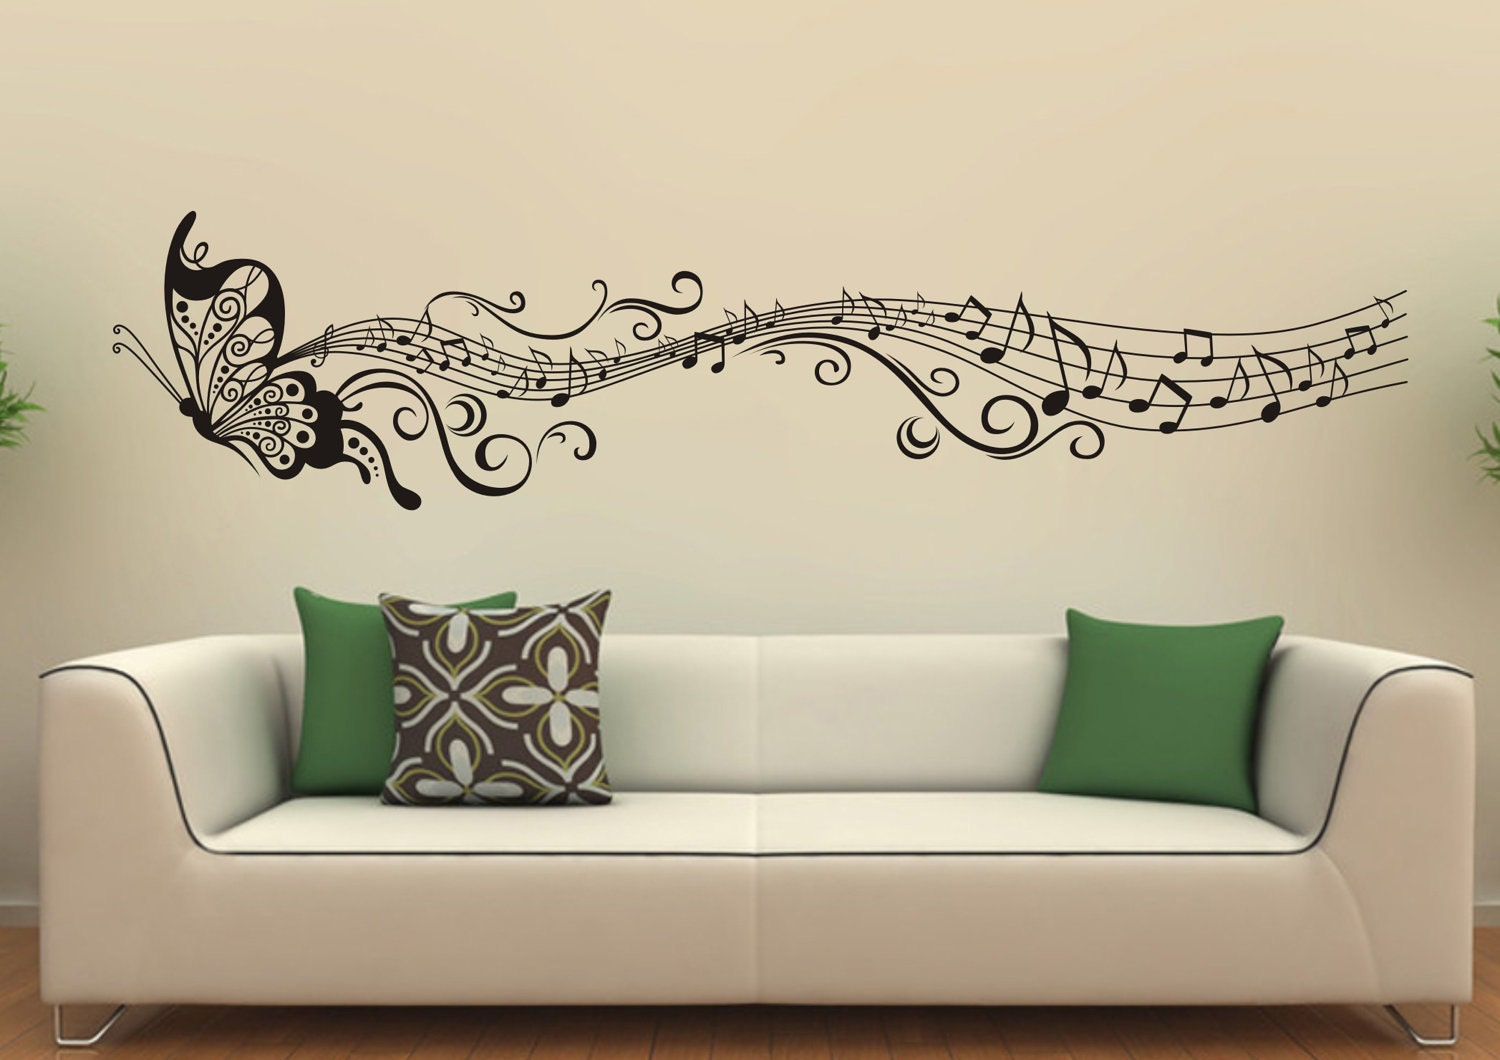 Wall Sticker For Home Decor : Music butterfly wall decals stickers vinyl decor